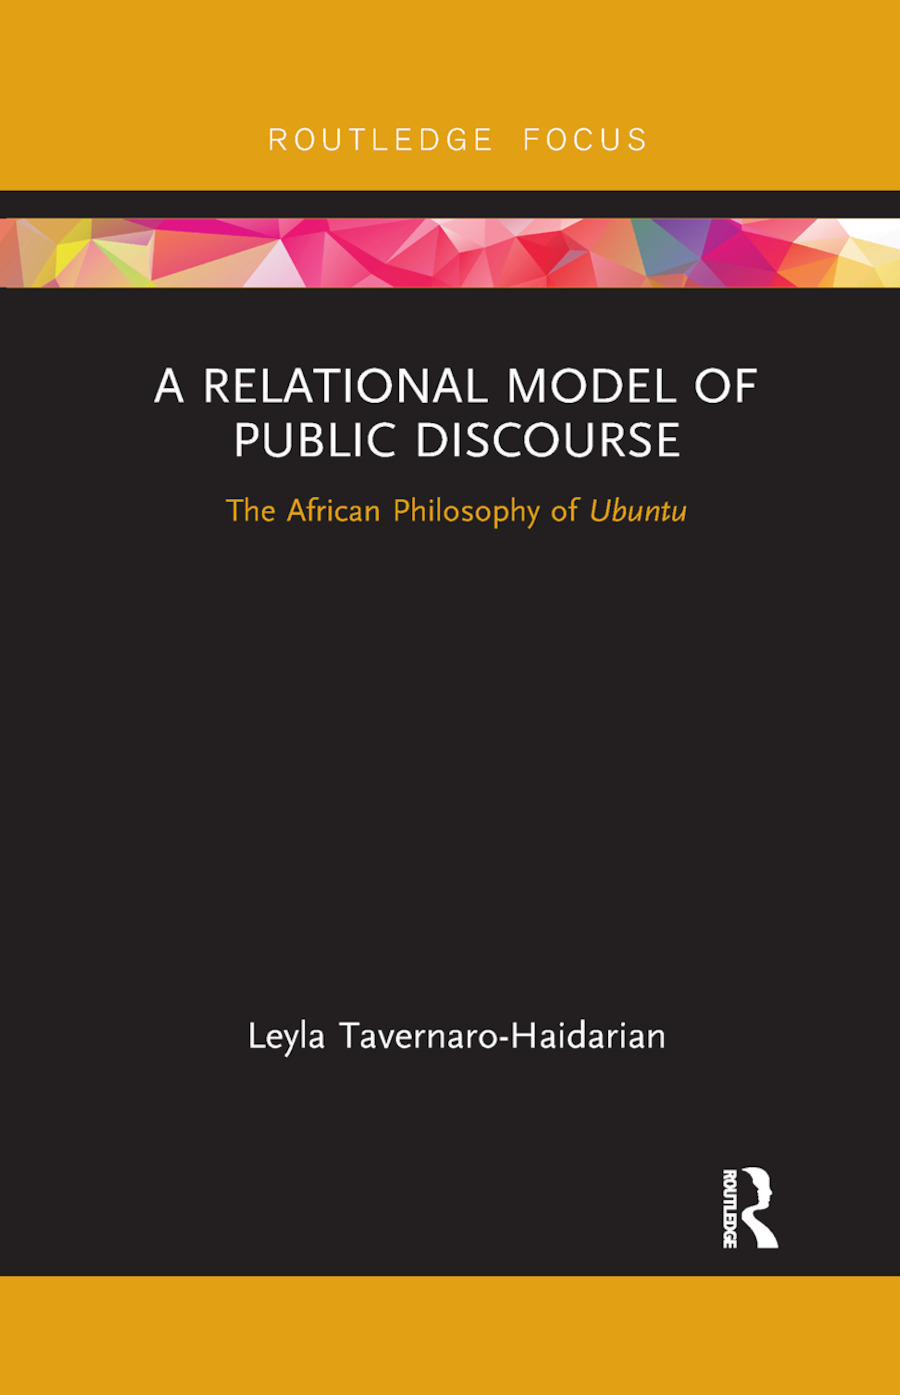 A Relational Model of Public Discourse